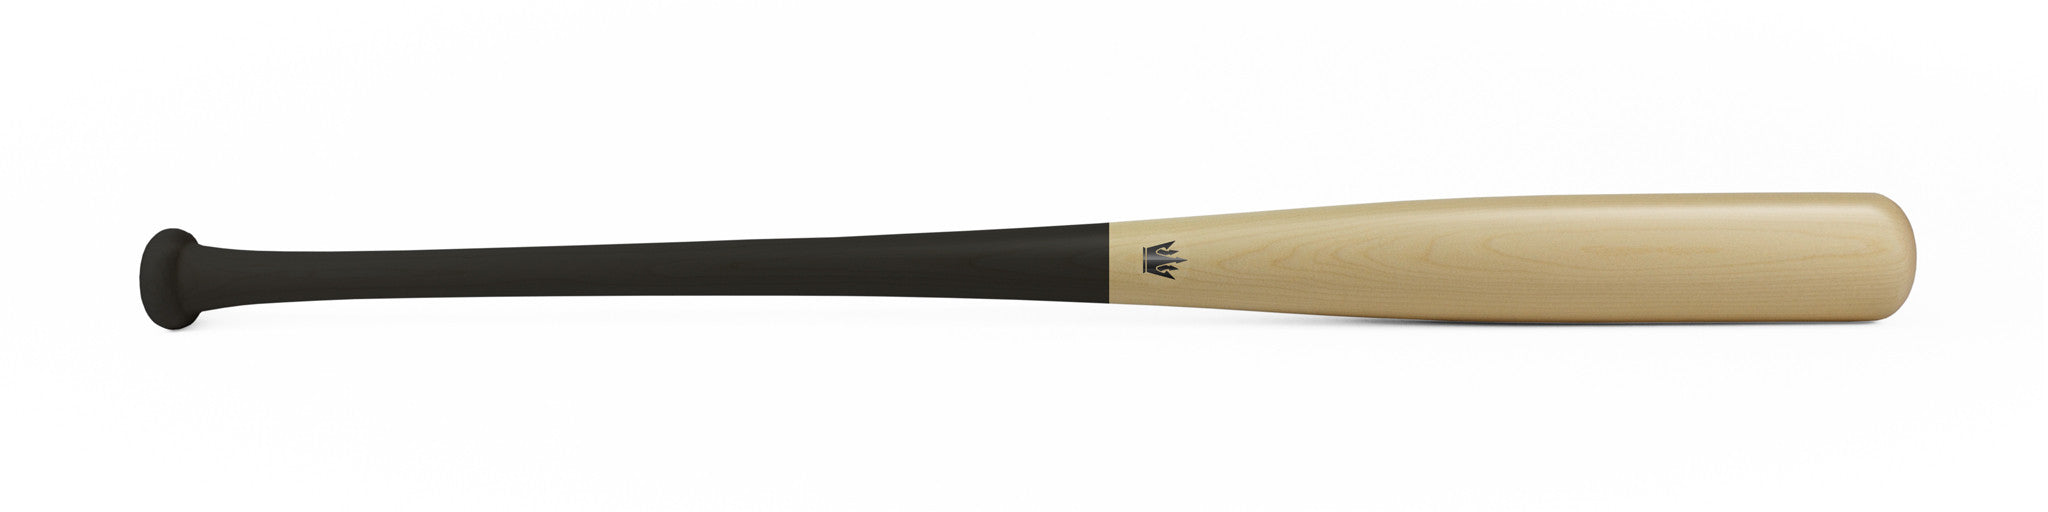 Wood bat - Birch model 318 Black Dip - 16